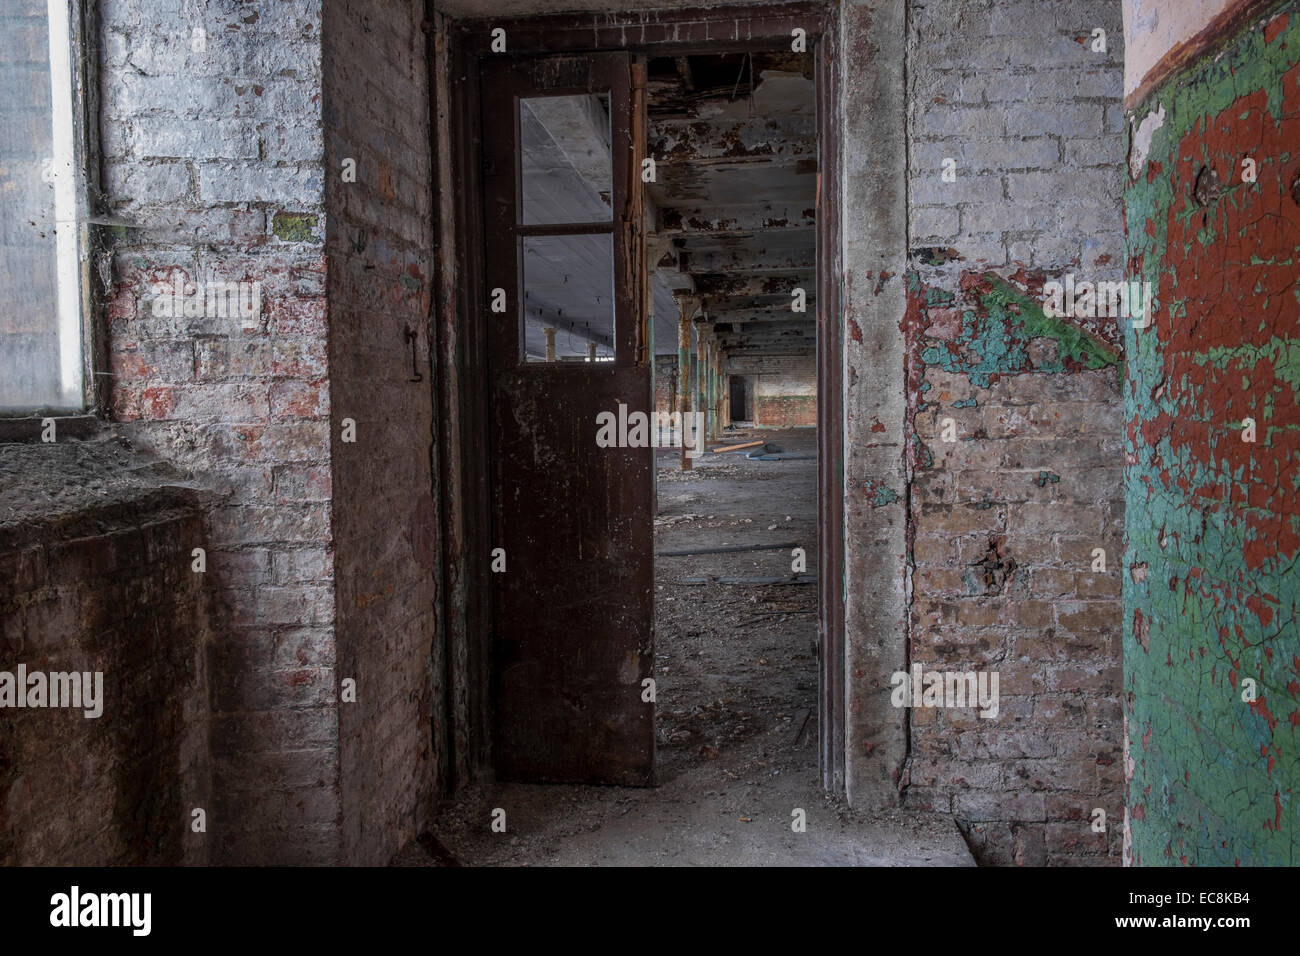 Disused old Lancashire cotton mill in a state of decay with a lot of debris on the floor area - Stock Image